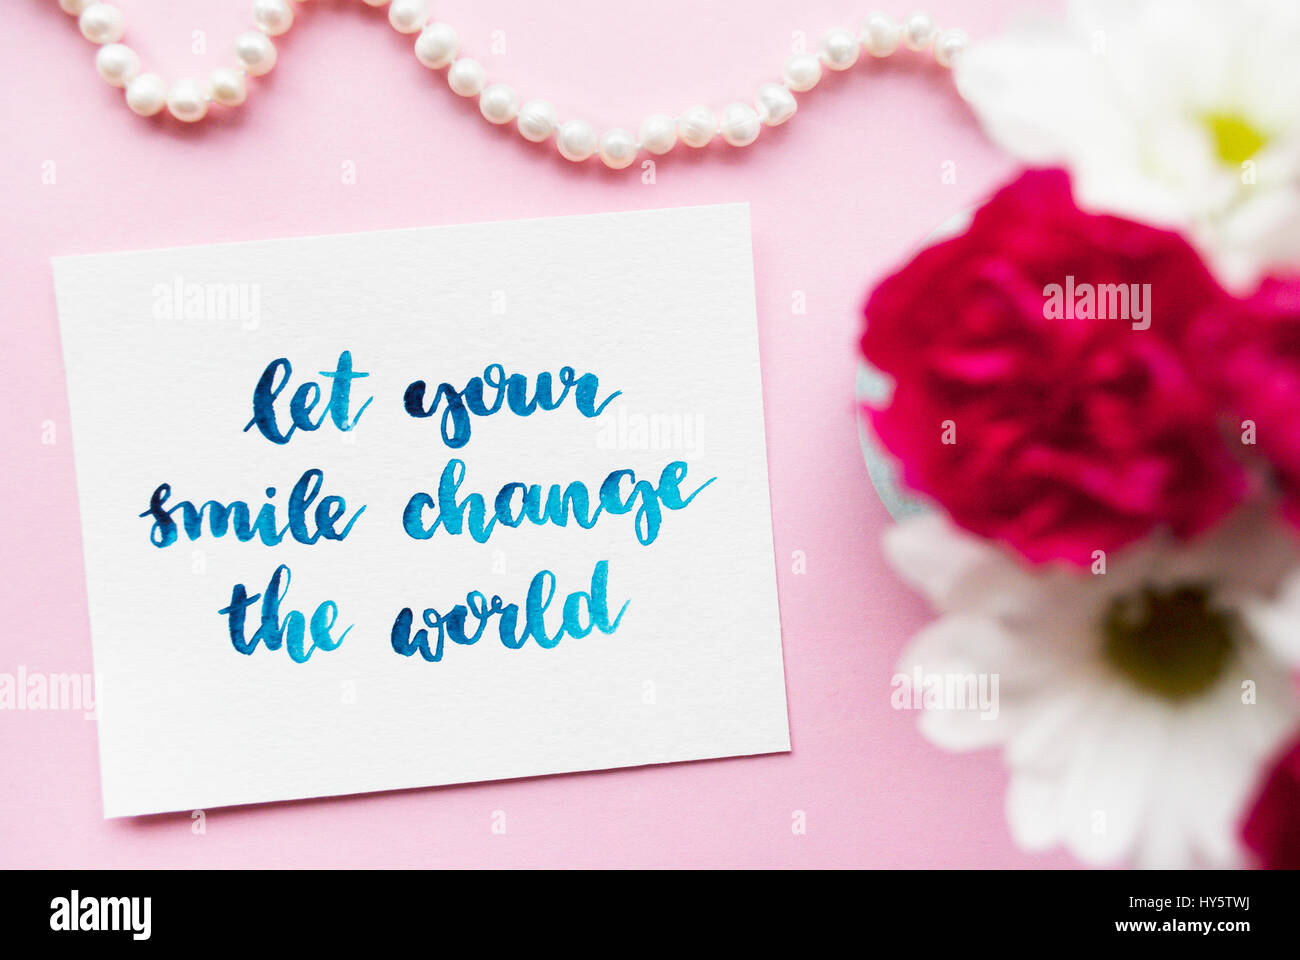 Inspirational quote Let your smile change the world written in calligraphy style with watercolor. Composition on - Stock Image